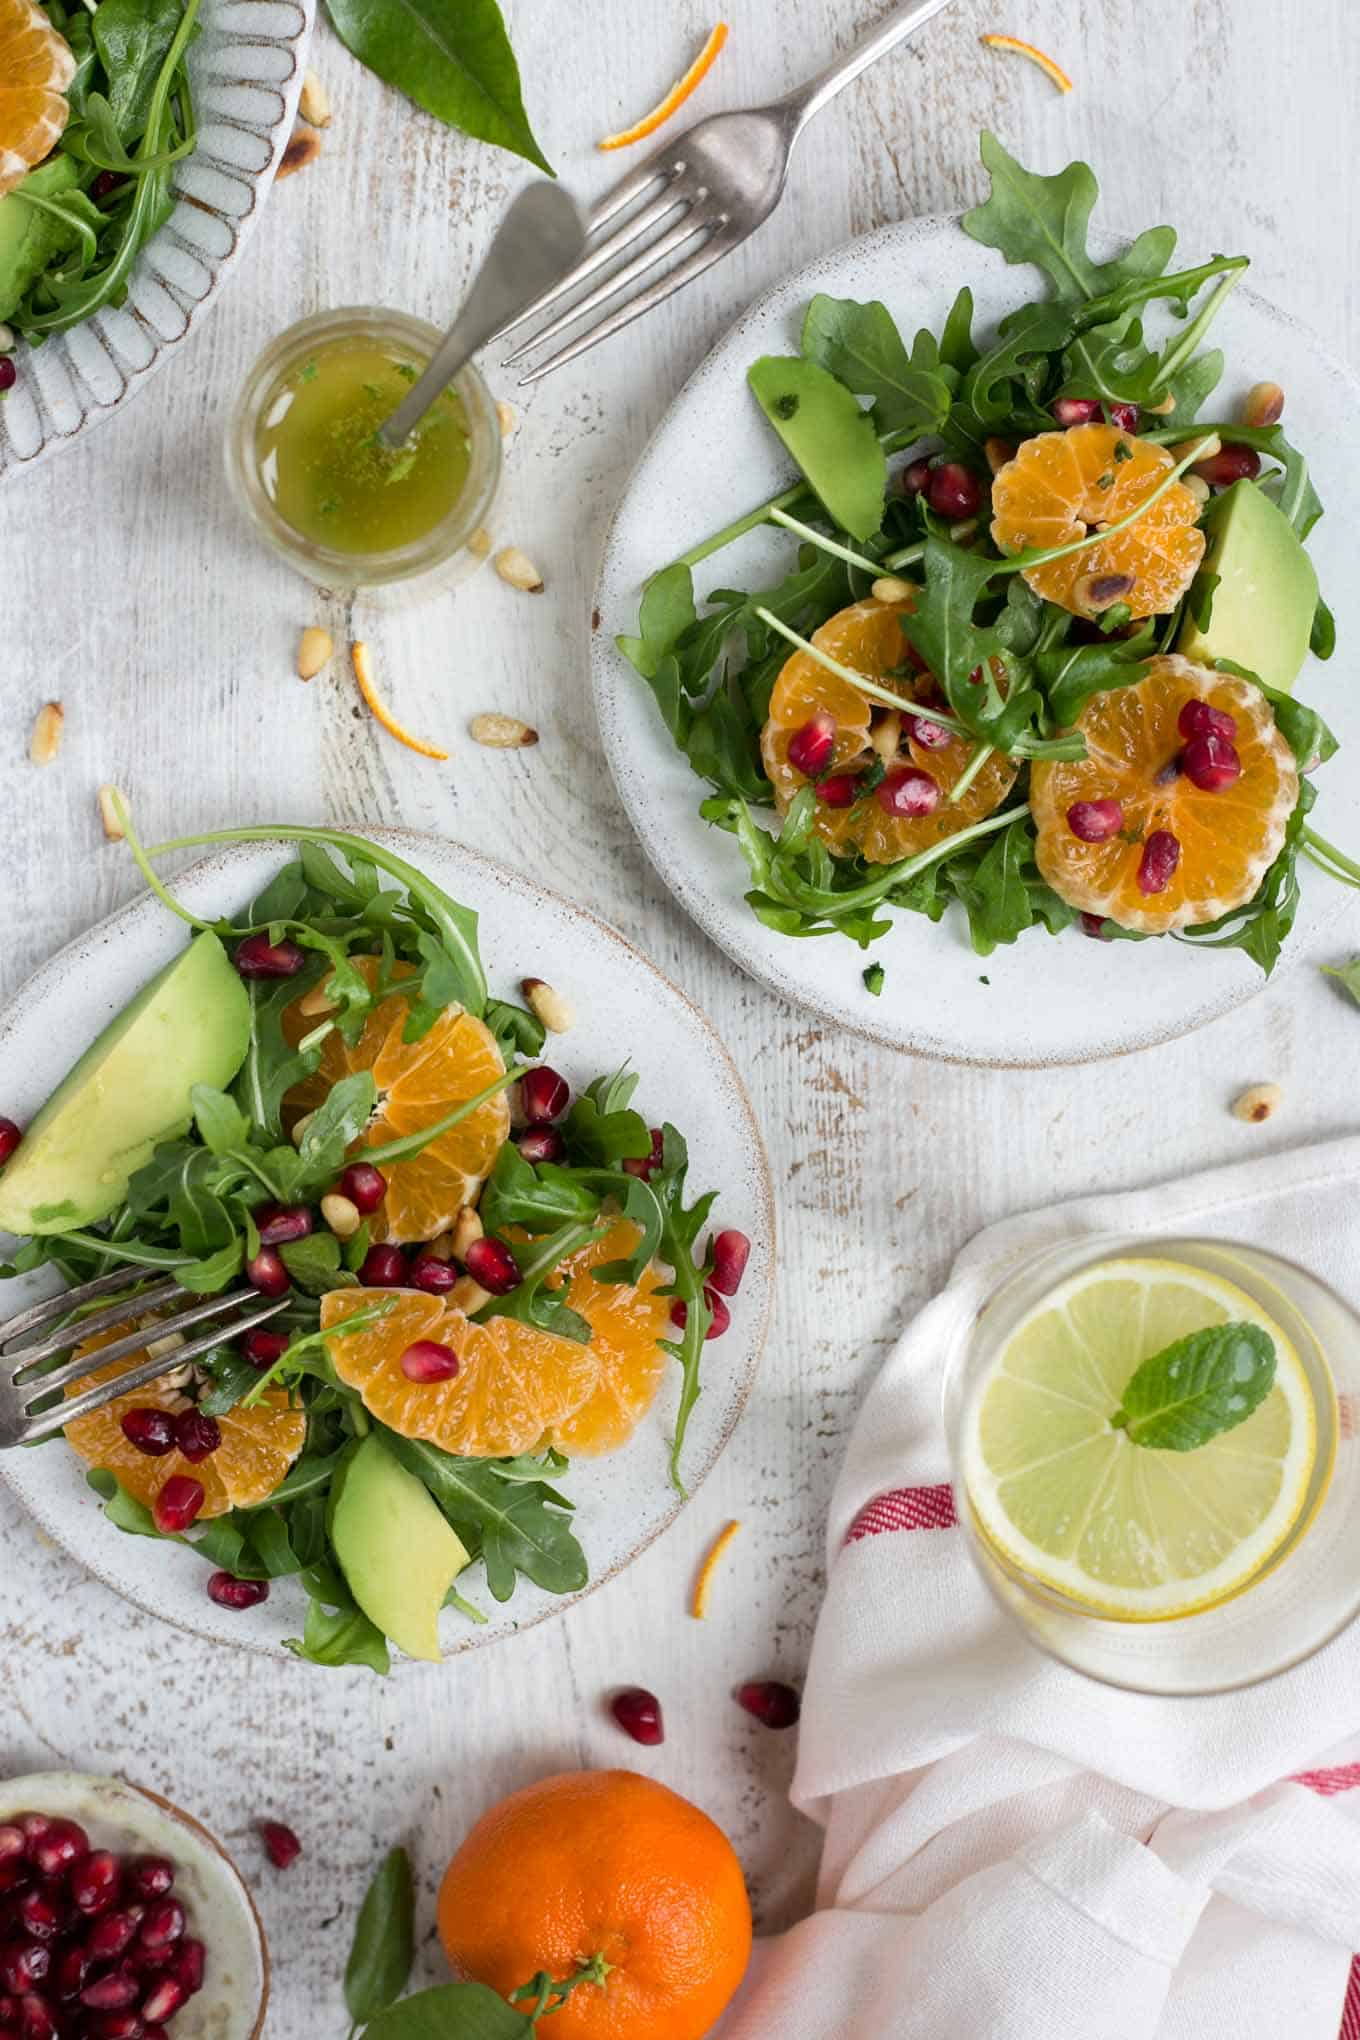 Easy and super- clean clementine salad with avocado and pomegranate #vegan #dairyfree #salad #healthy | via @annabanana.co